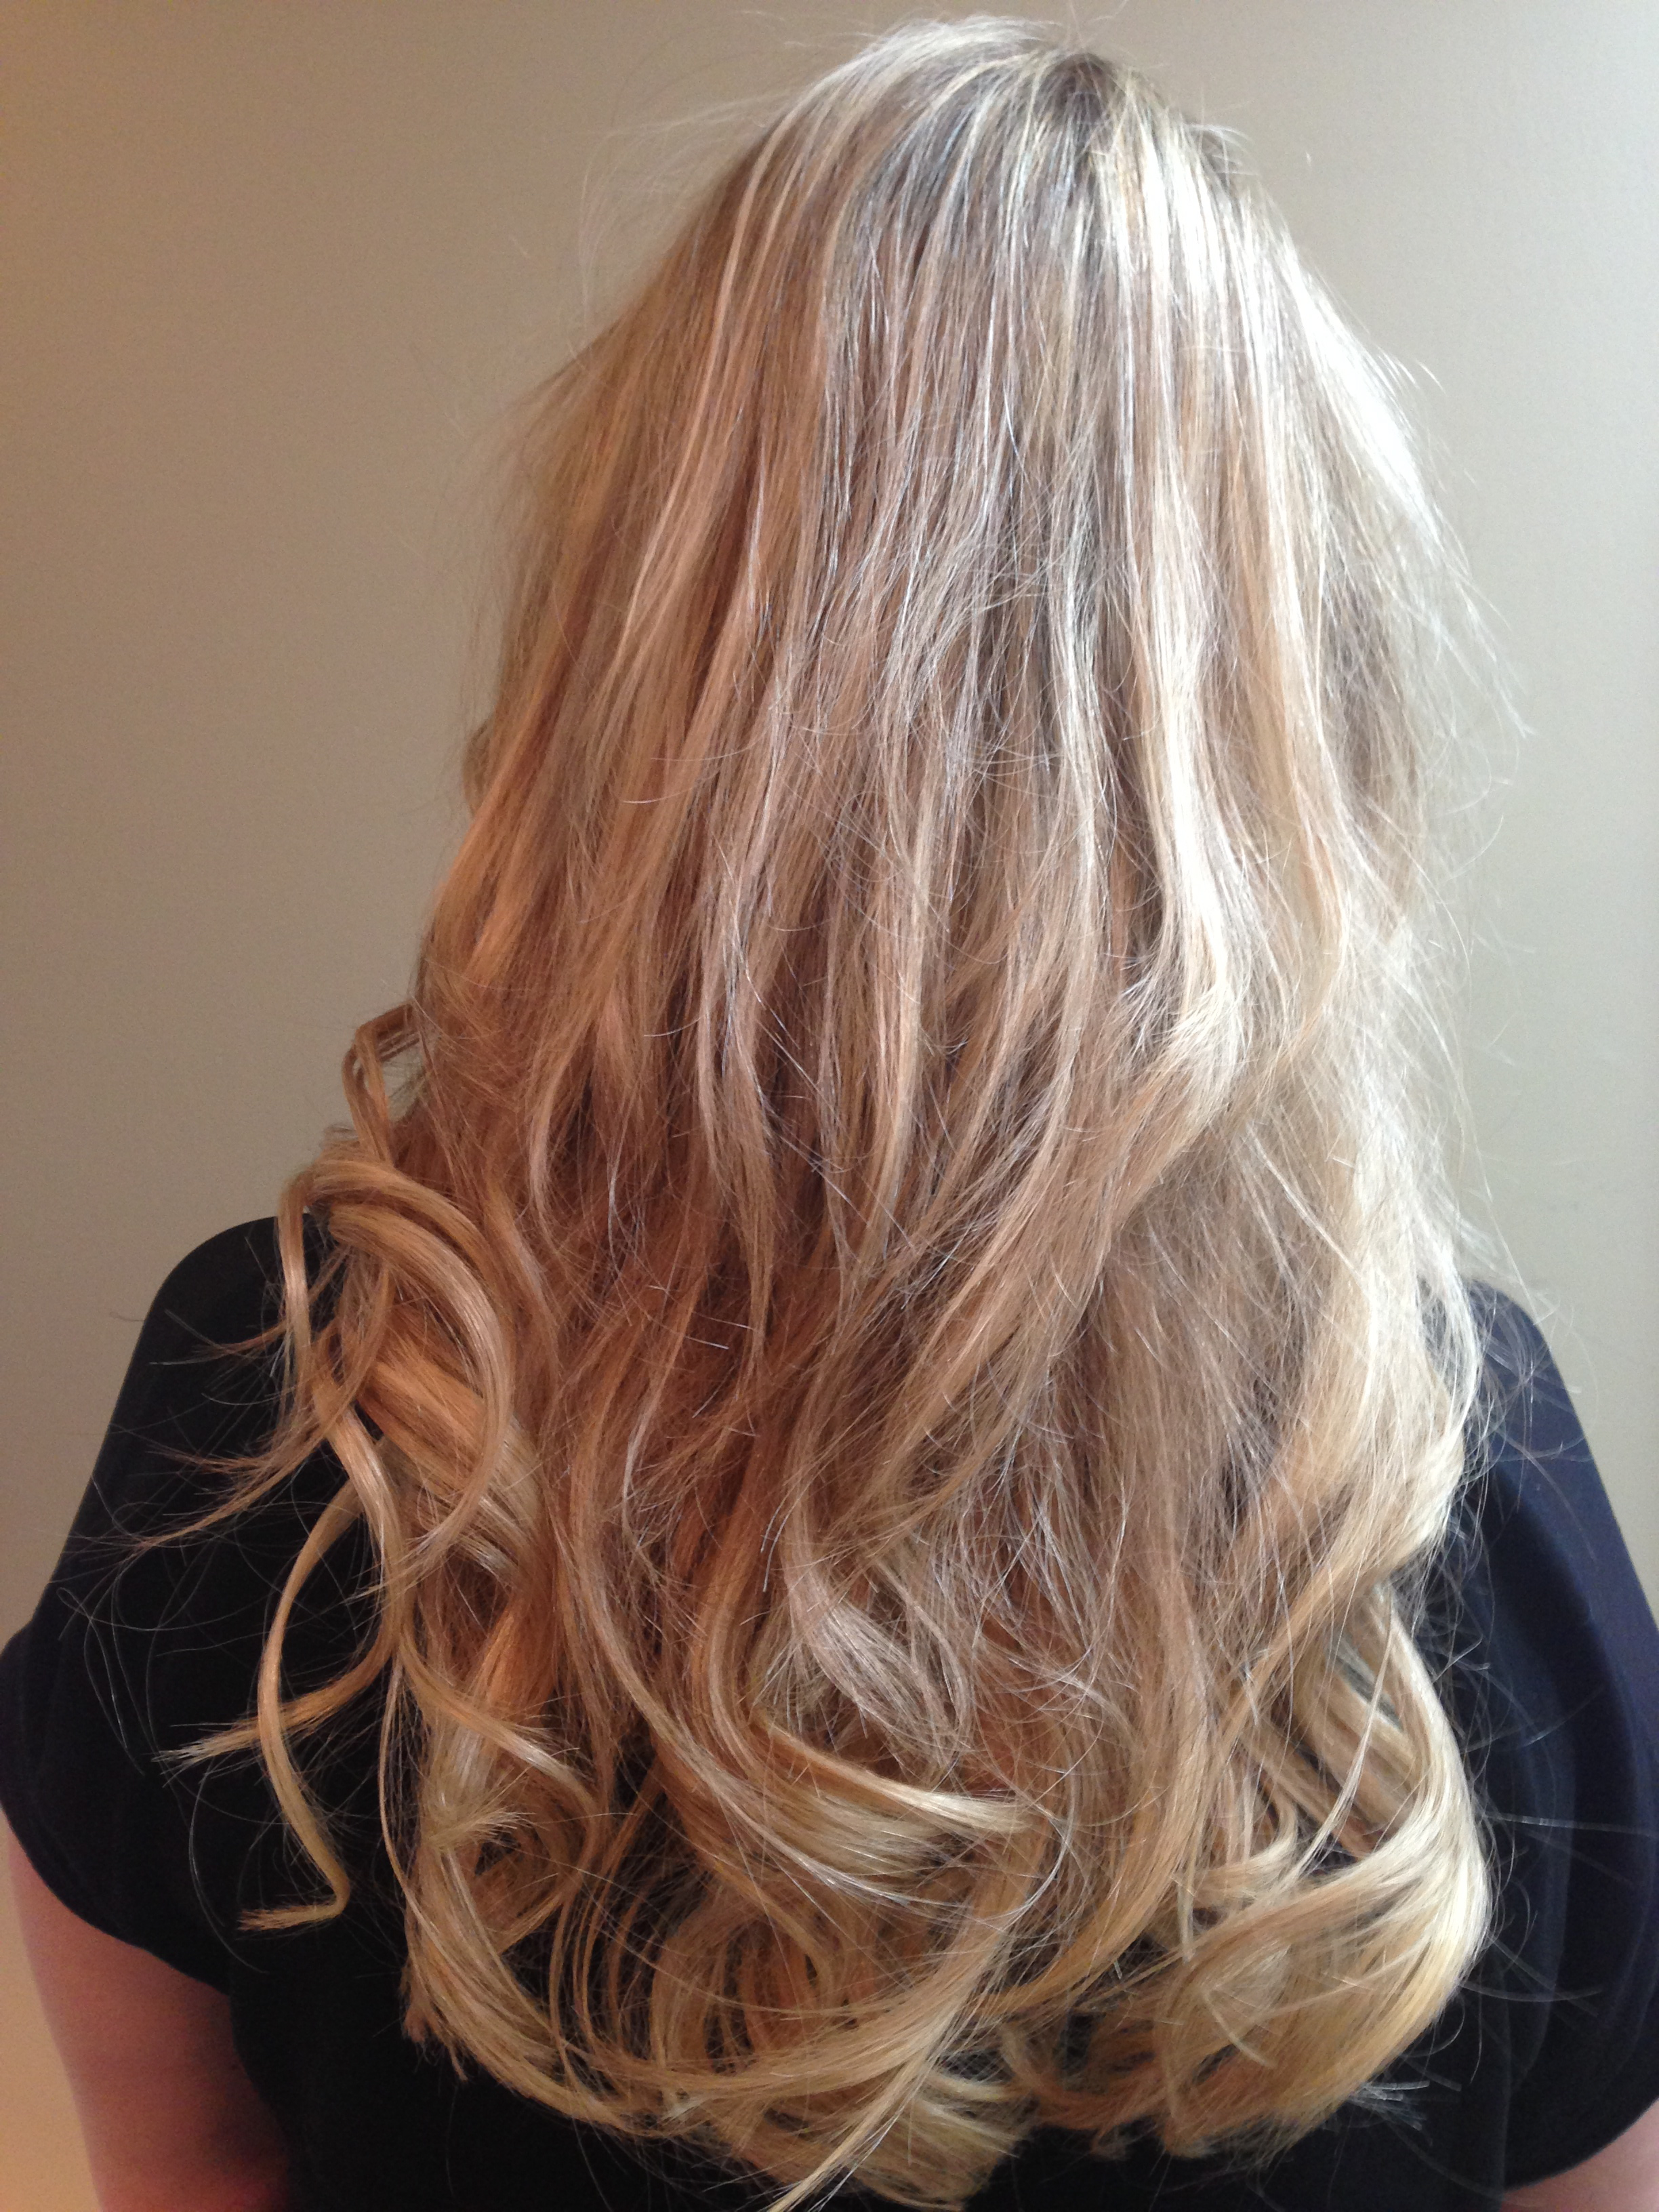 Affordable help with hair extensions hair replacement thinning affordable help with hair extensions hair replacement thinning hair hair loss alopecia trichotillomania i am passionate about helping those who suffer pmusecretfo Gallery